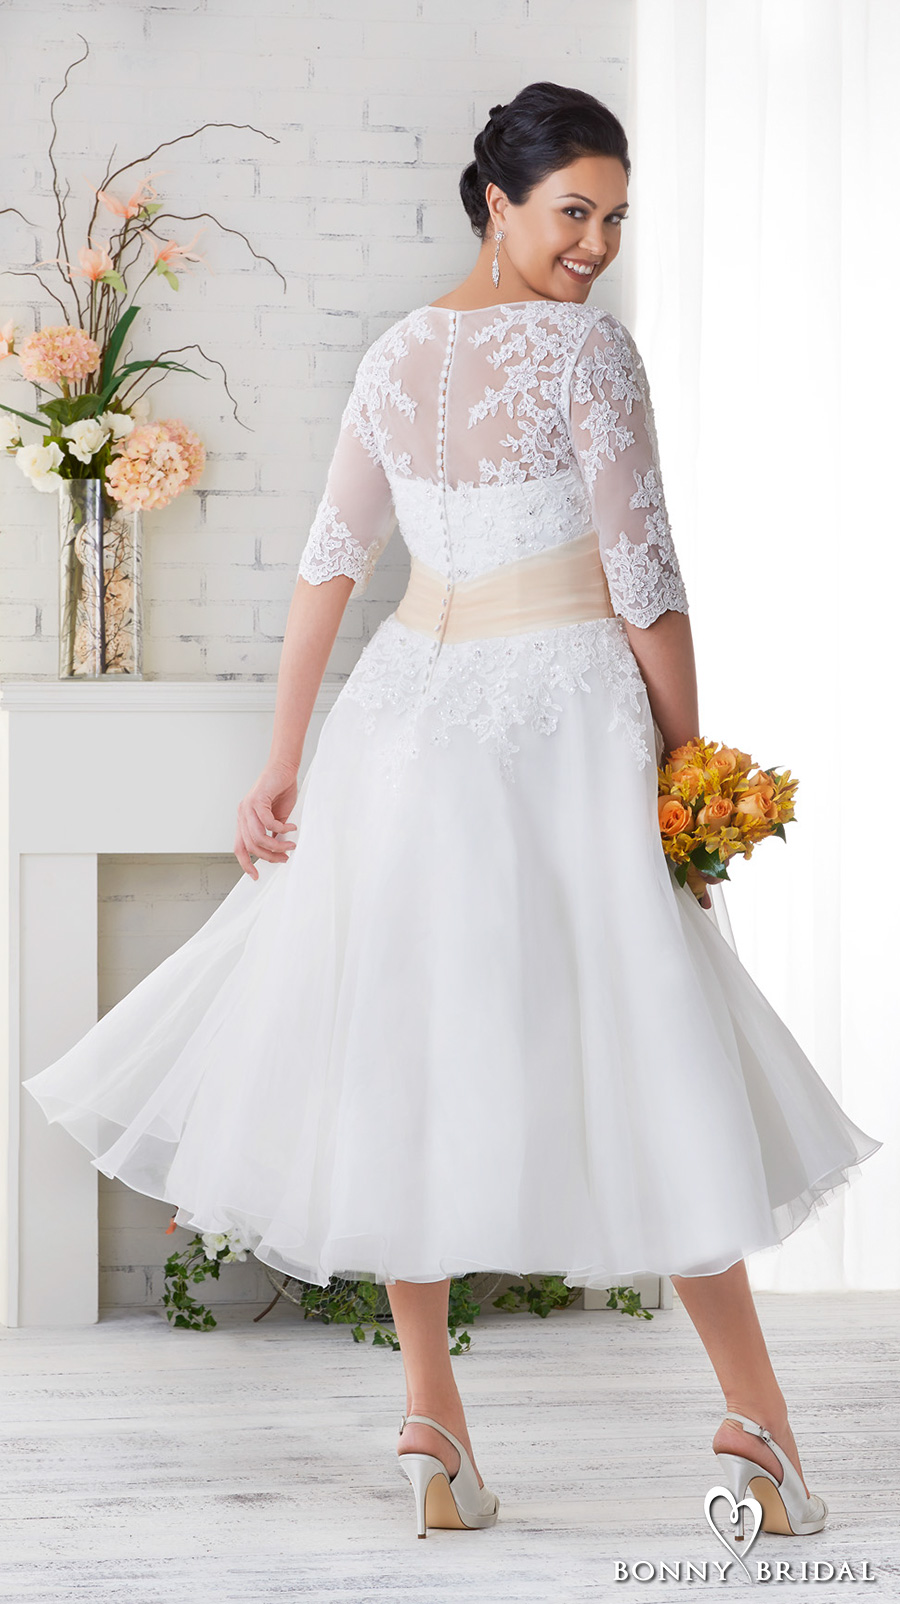 Neckline Soft Dress Lace Embellished Fit And And Flare Tulle Line Sweetheart Wedding